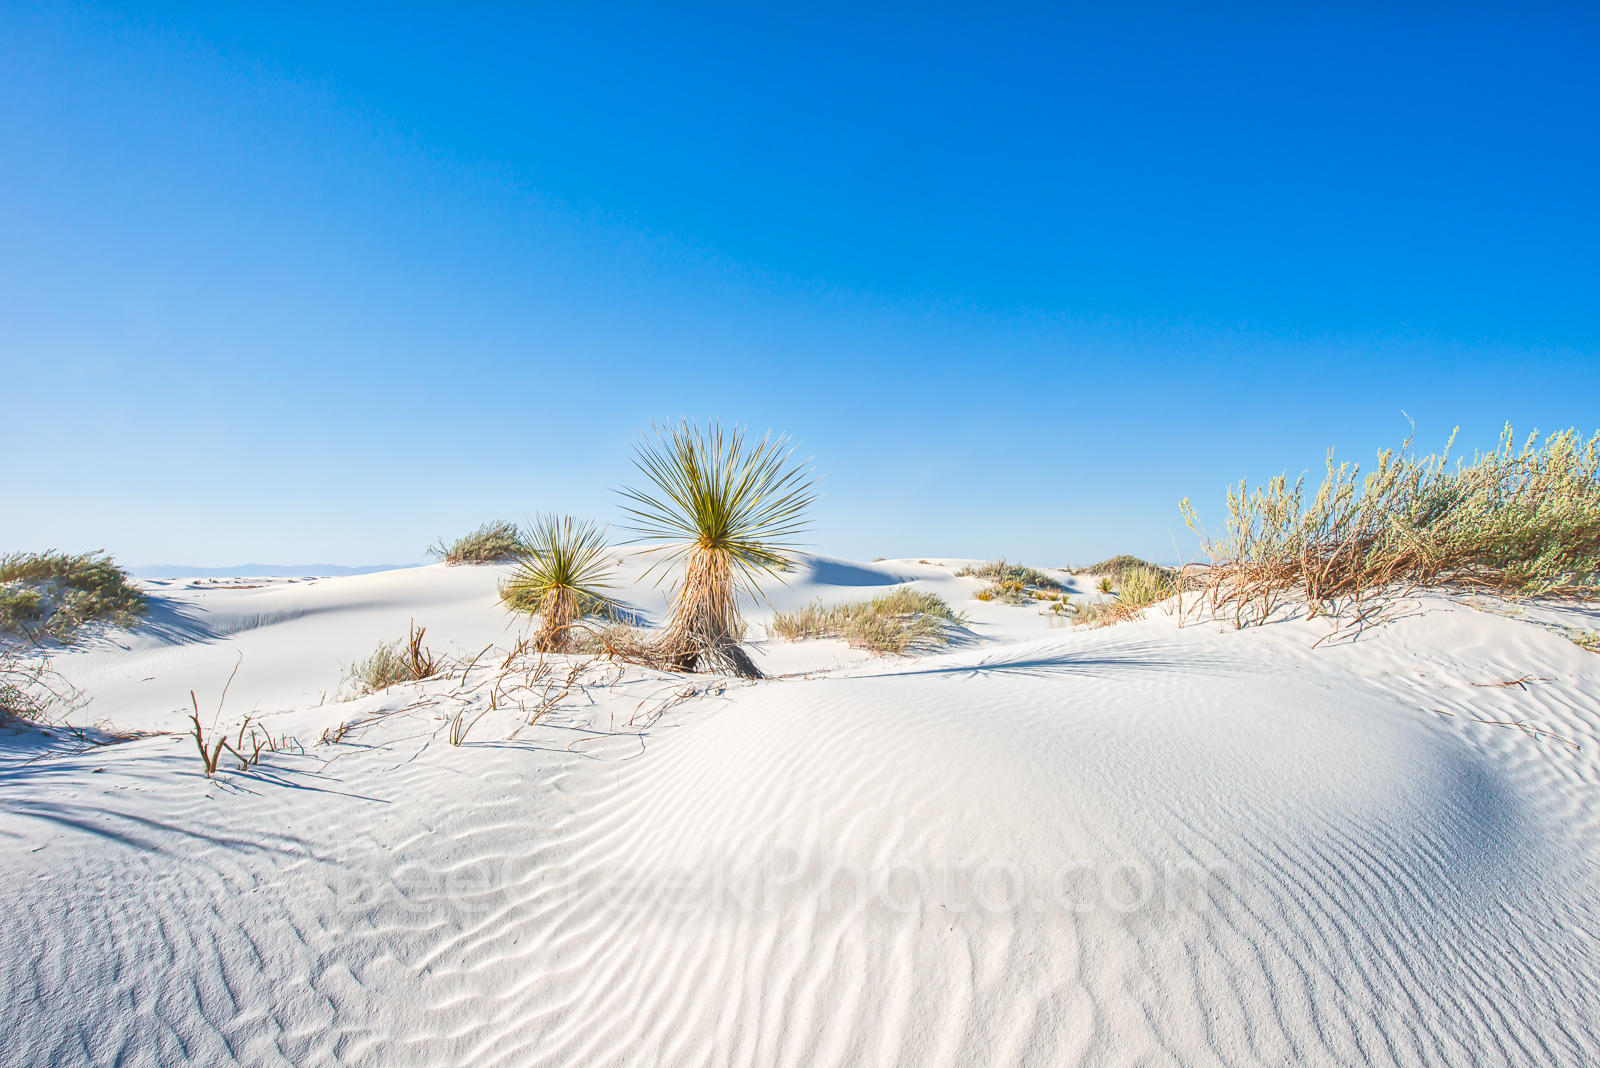 Desert Dunes - Desert Dunes Landscape from White Sands New Mexico with yuccas growing through the gypsum sand. &nbsp...